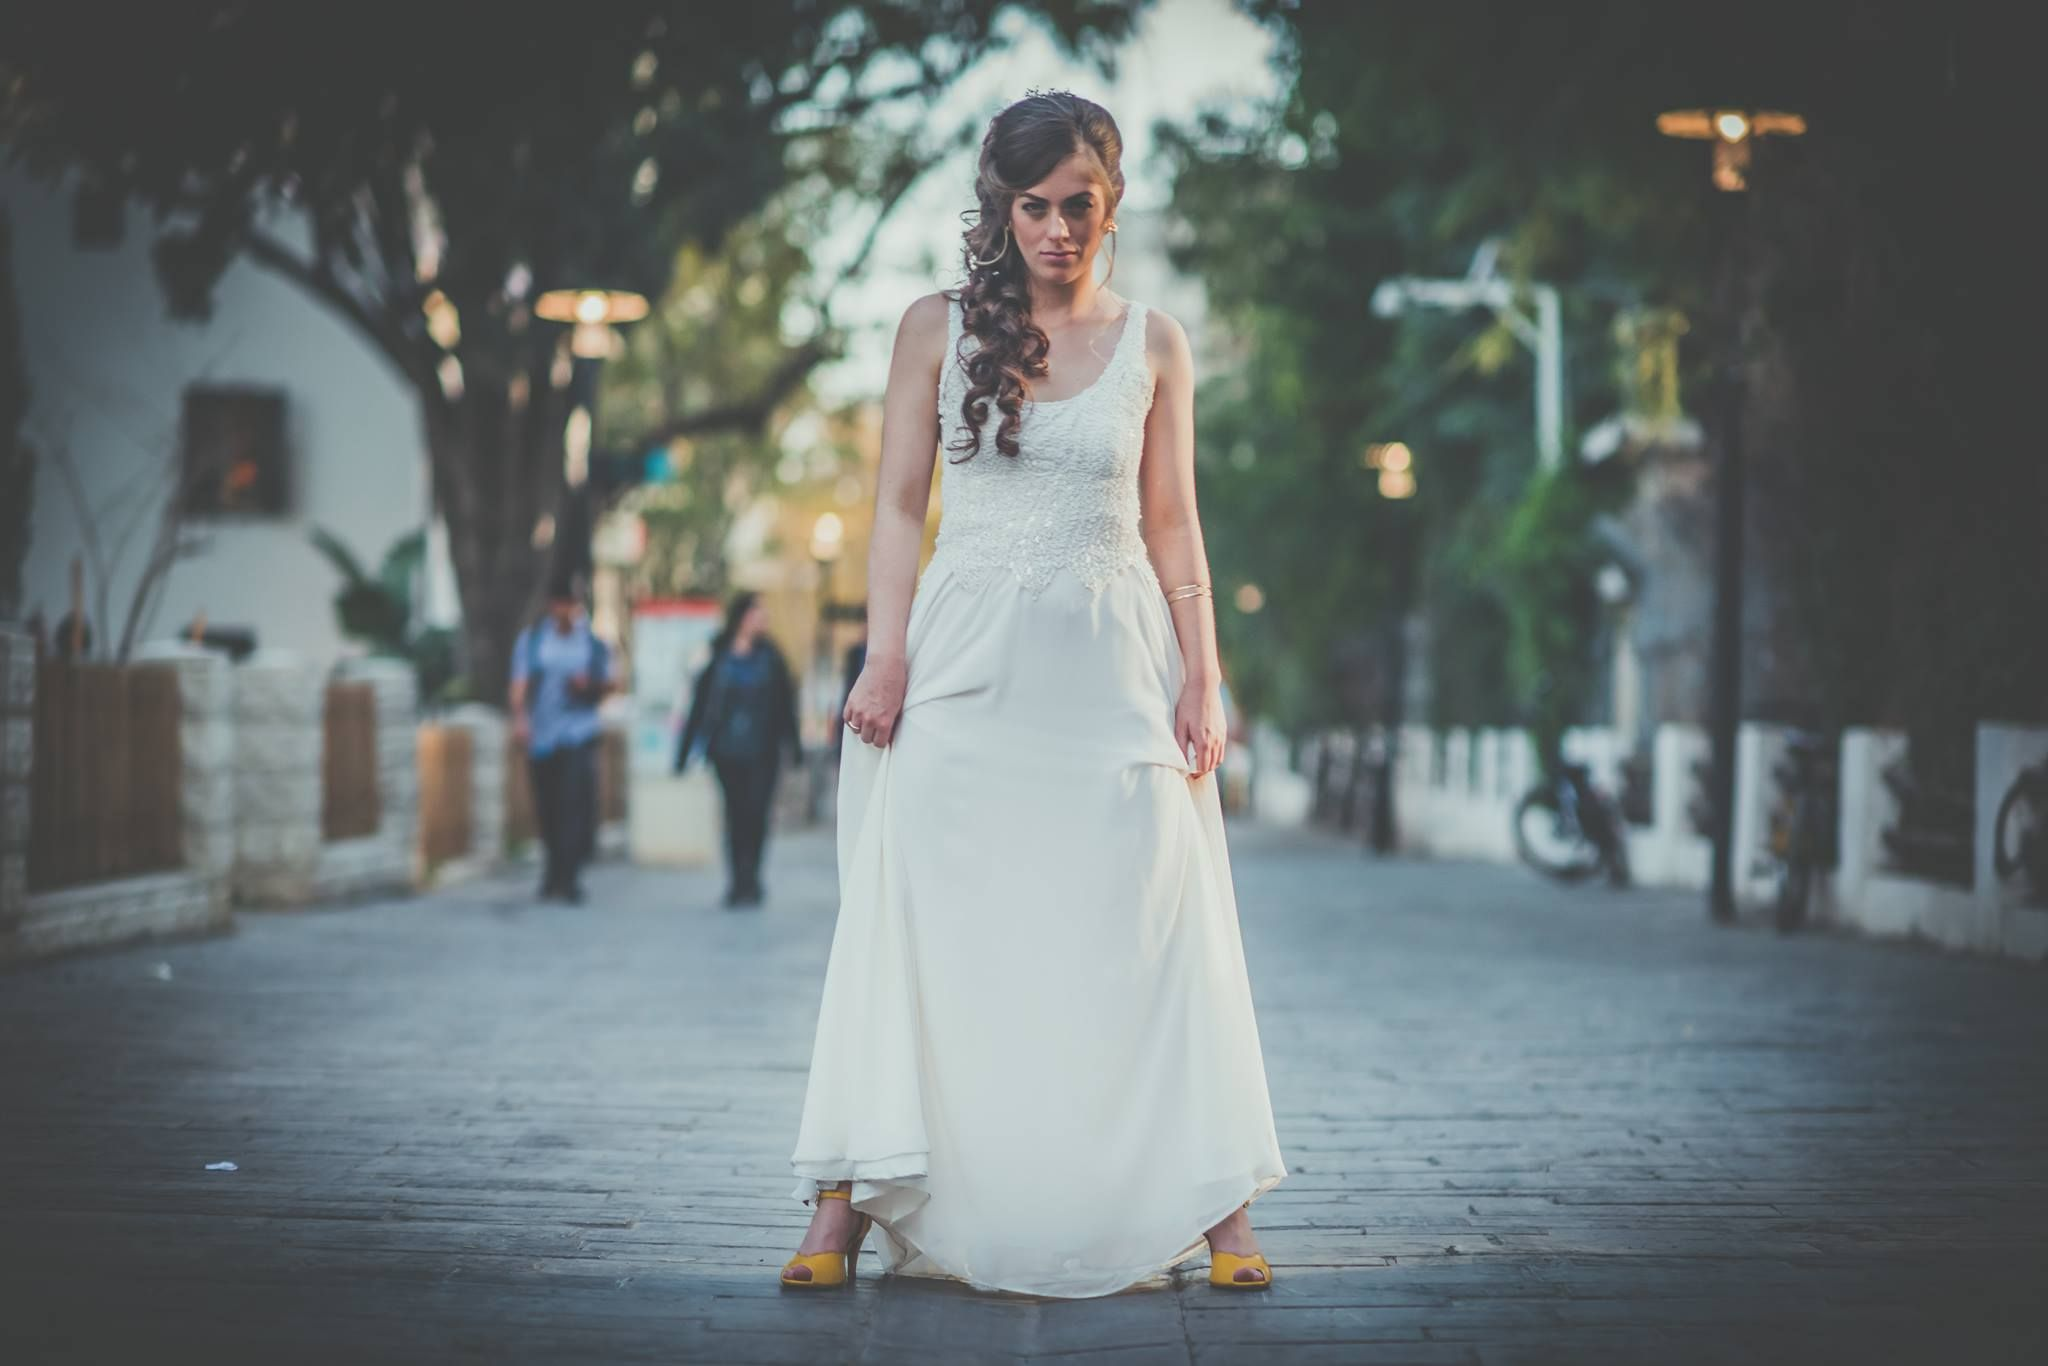 Brenda\'s awesome wedding look, vegan wedding shoes by RONI KANTOR ...